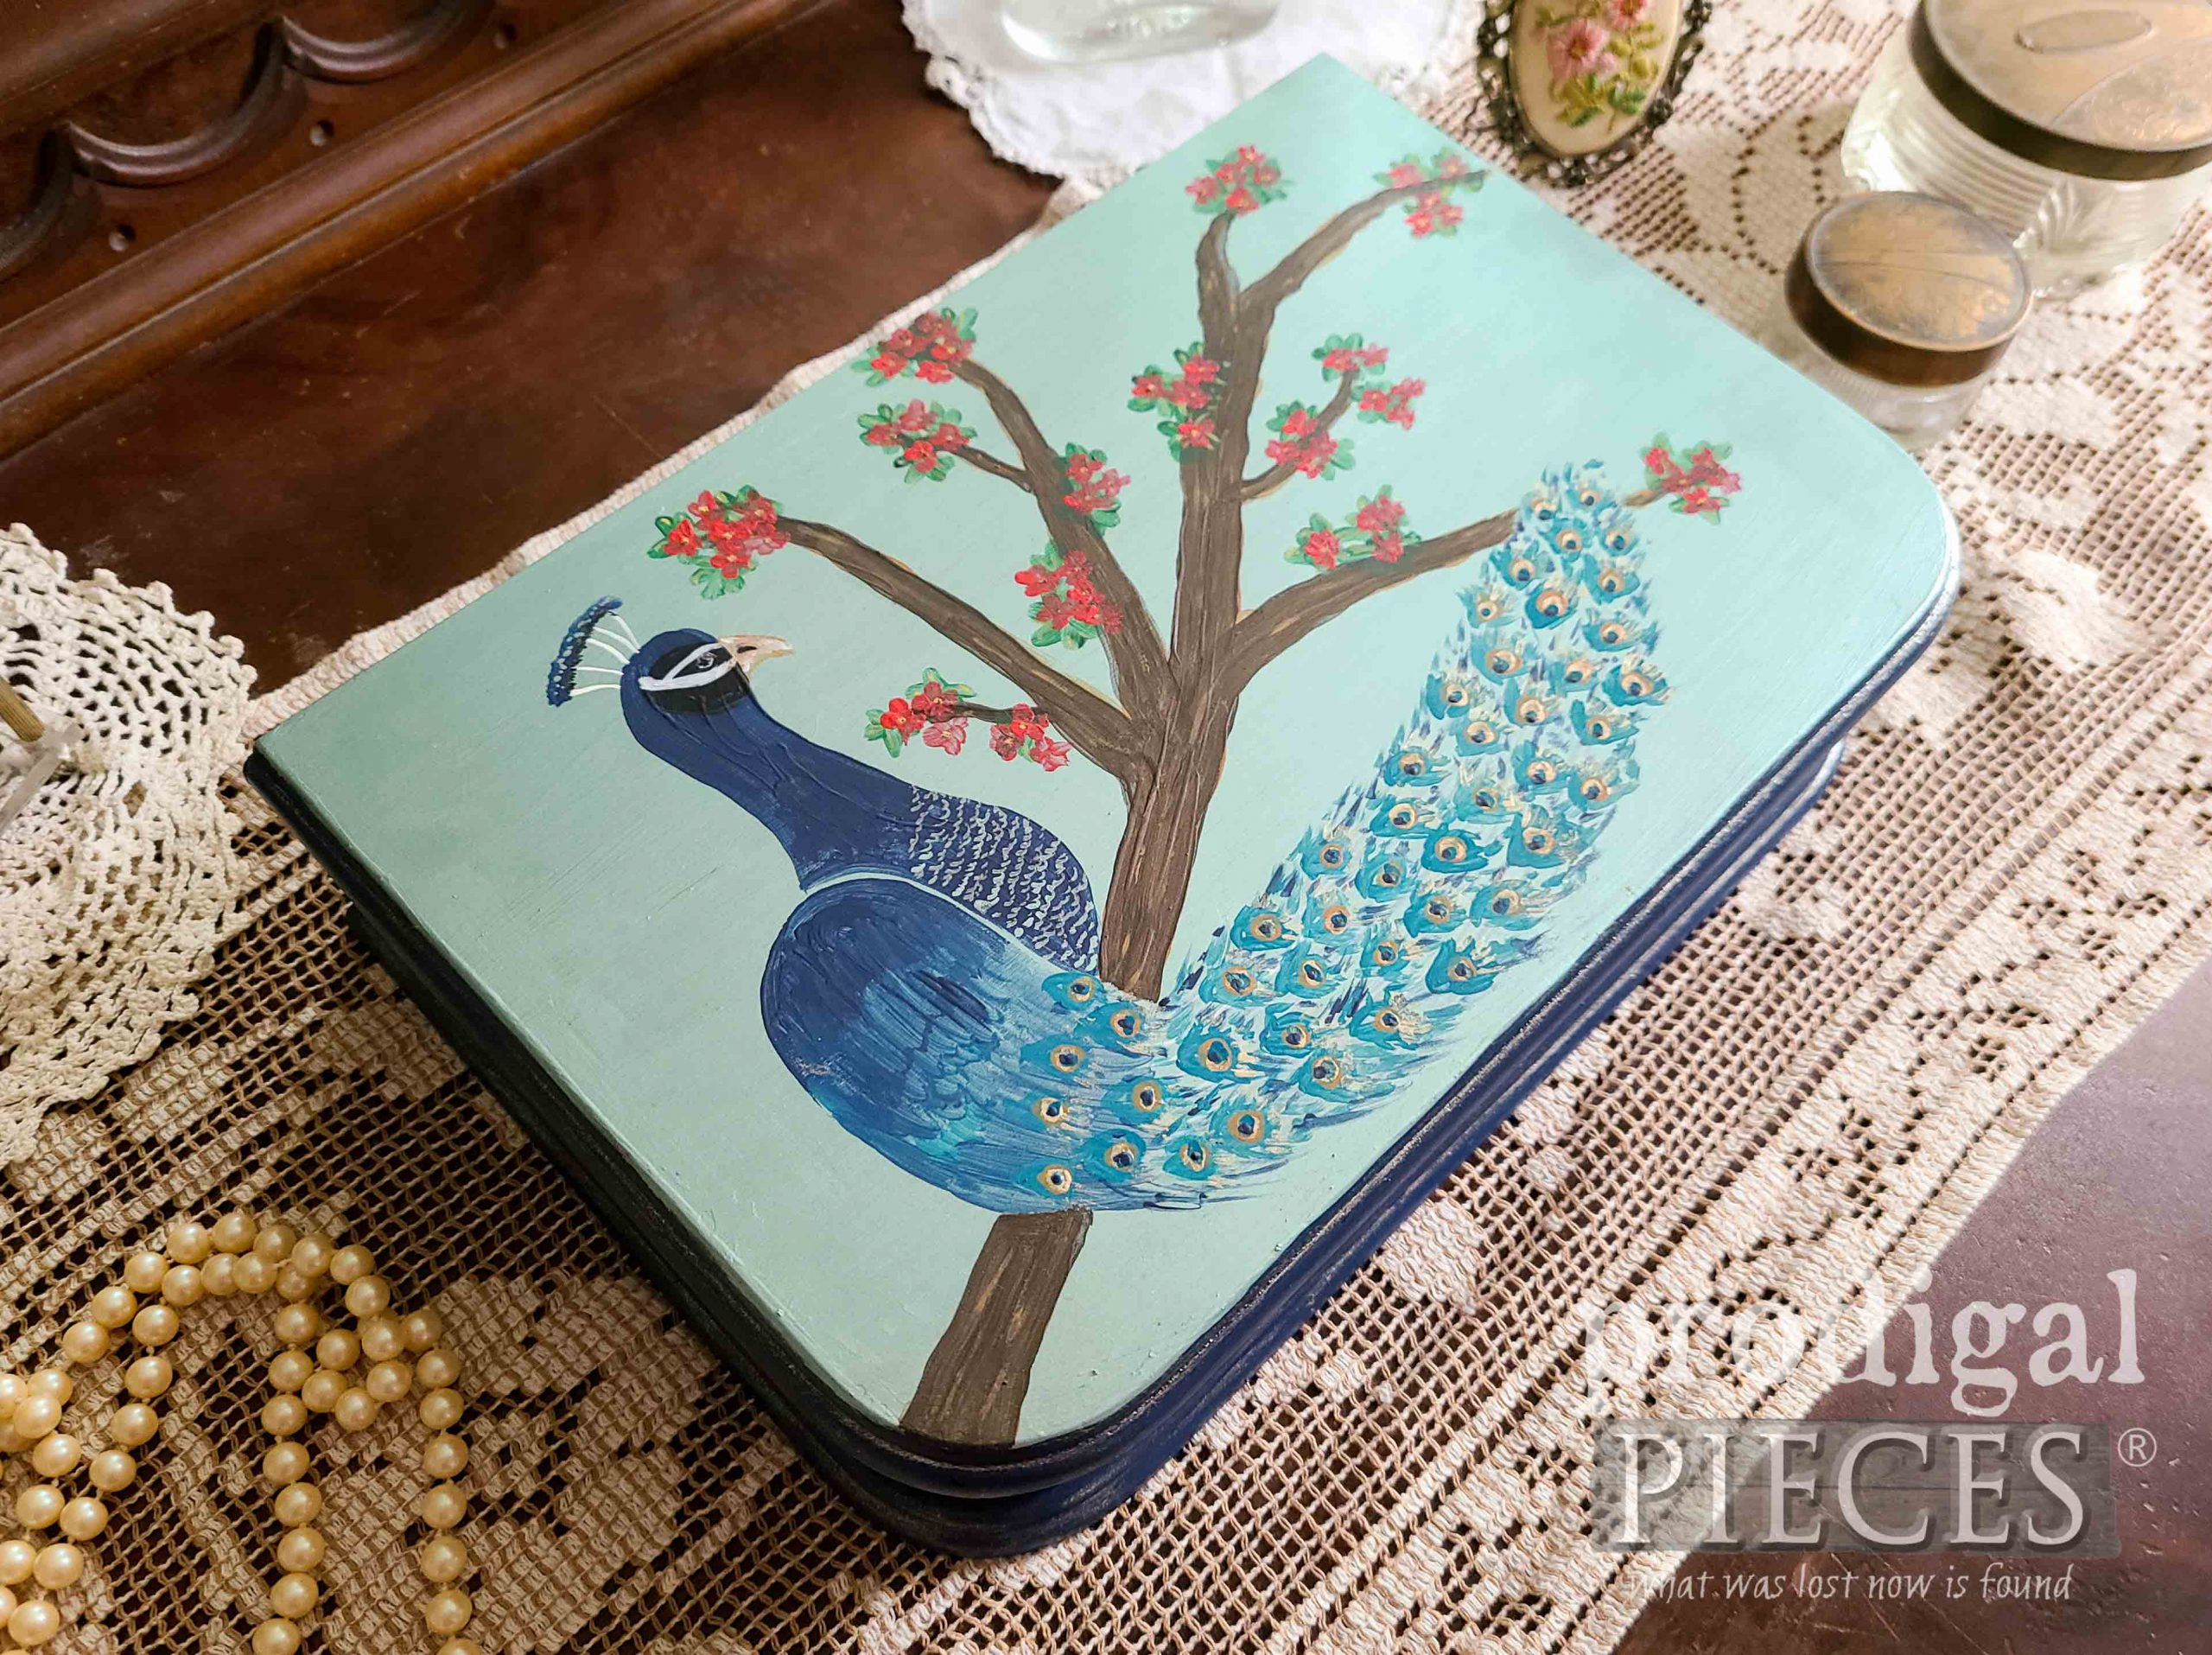 Blue Peacock Jewelry Box by Larissa of Prodigal Pieces | prodigalpieces.com #prodigalpieces #jewelry #vintage #handmade #home #homedecor